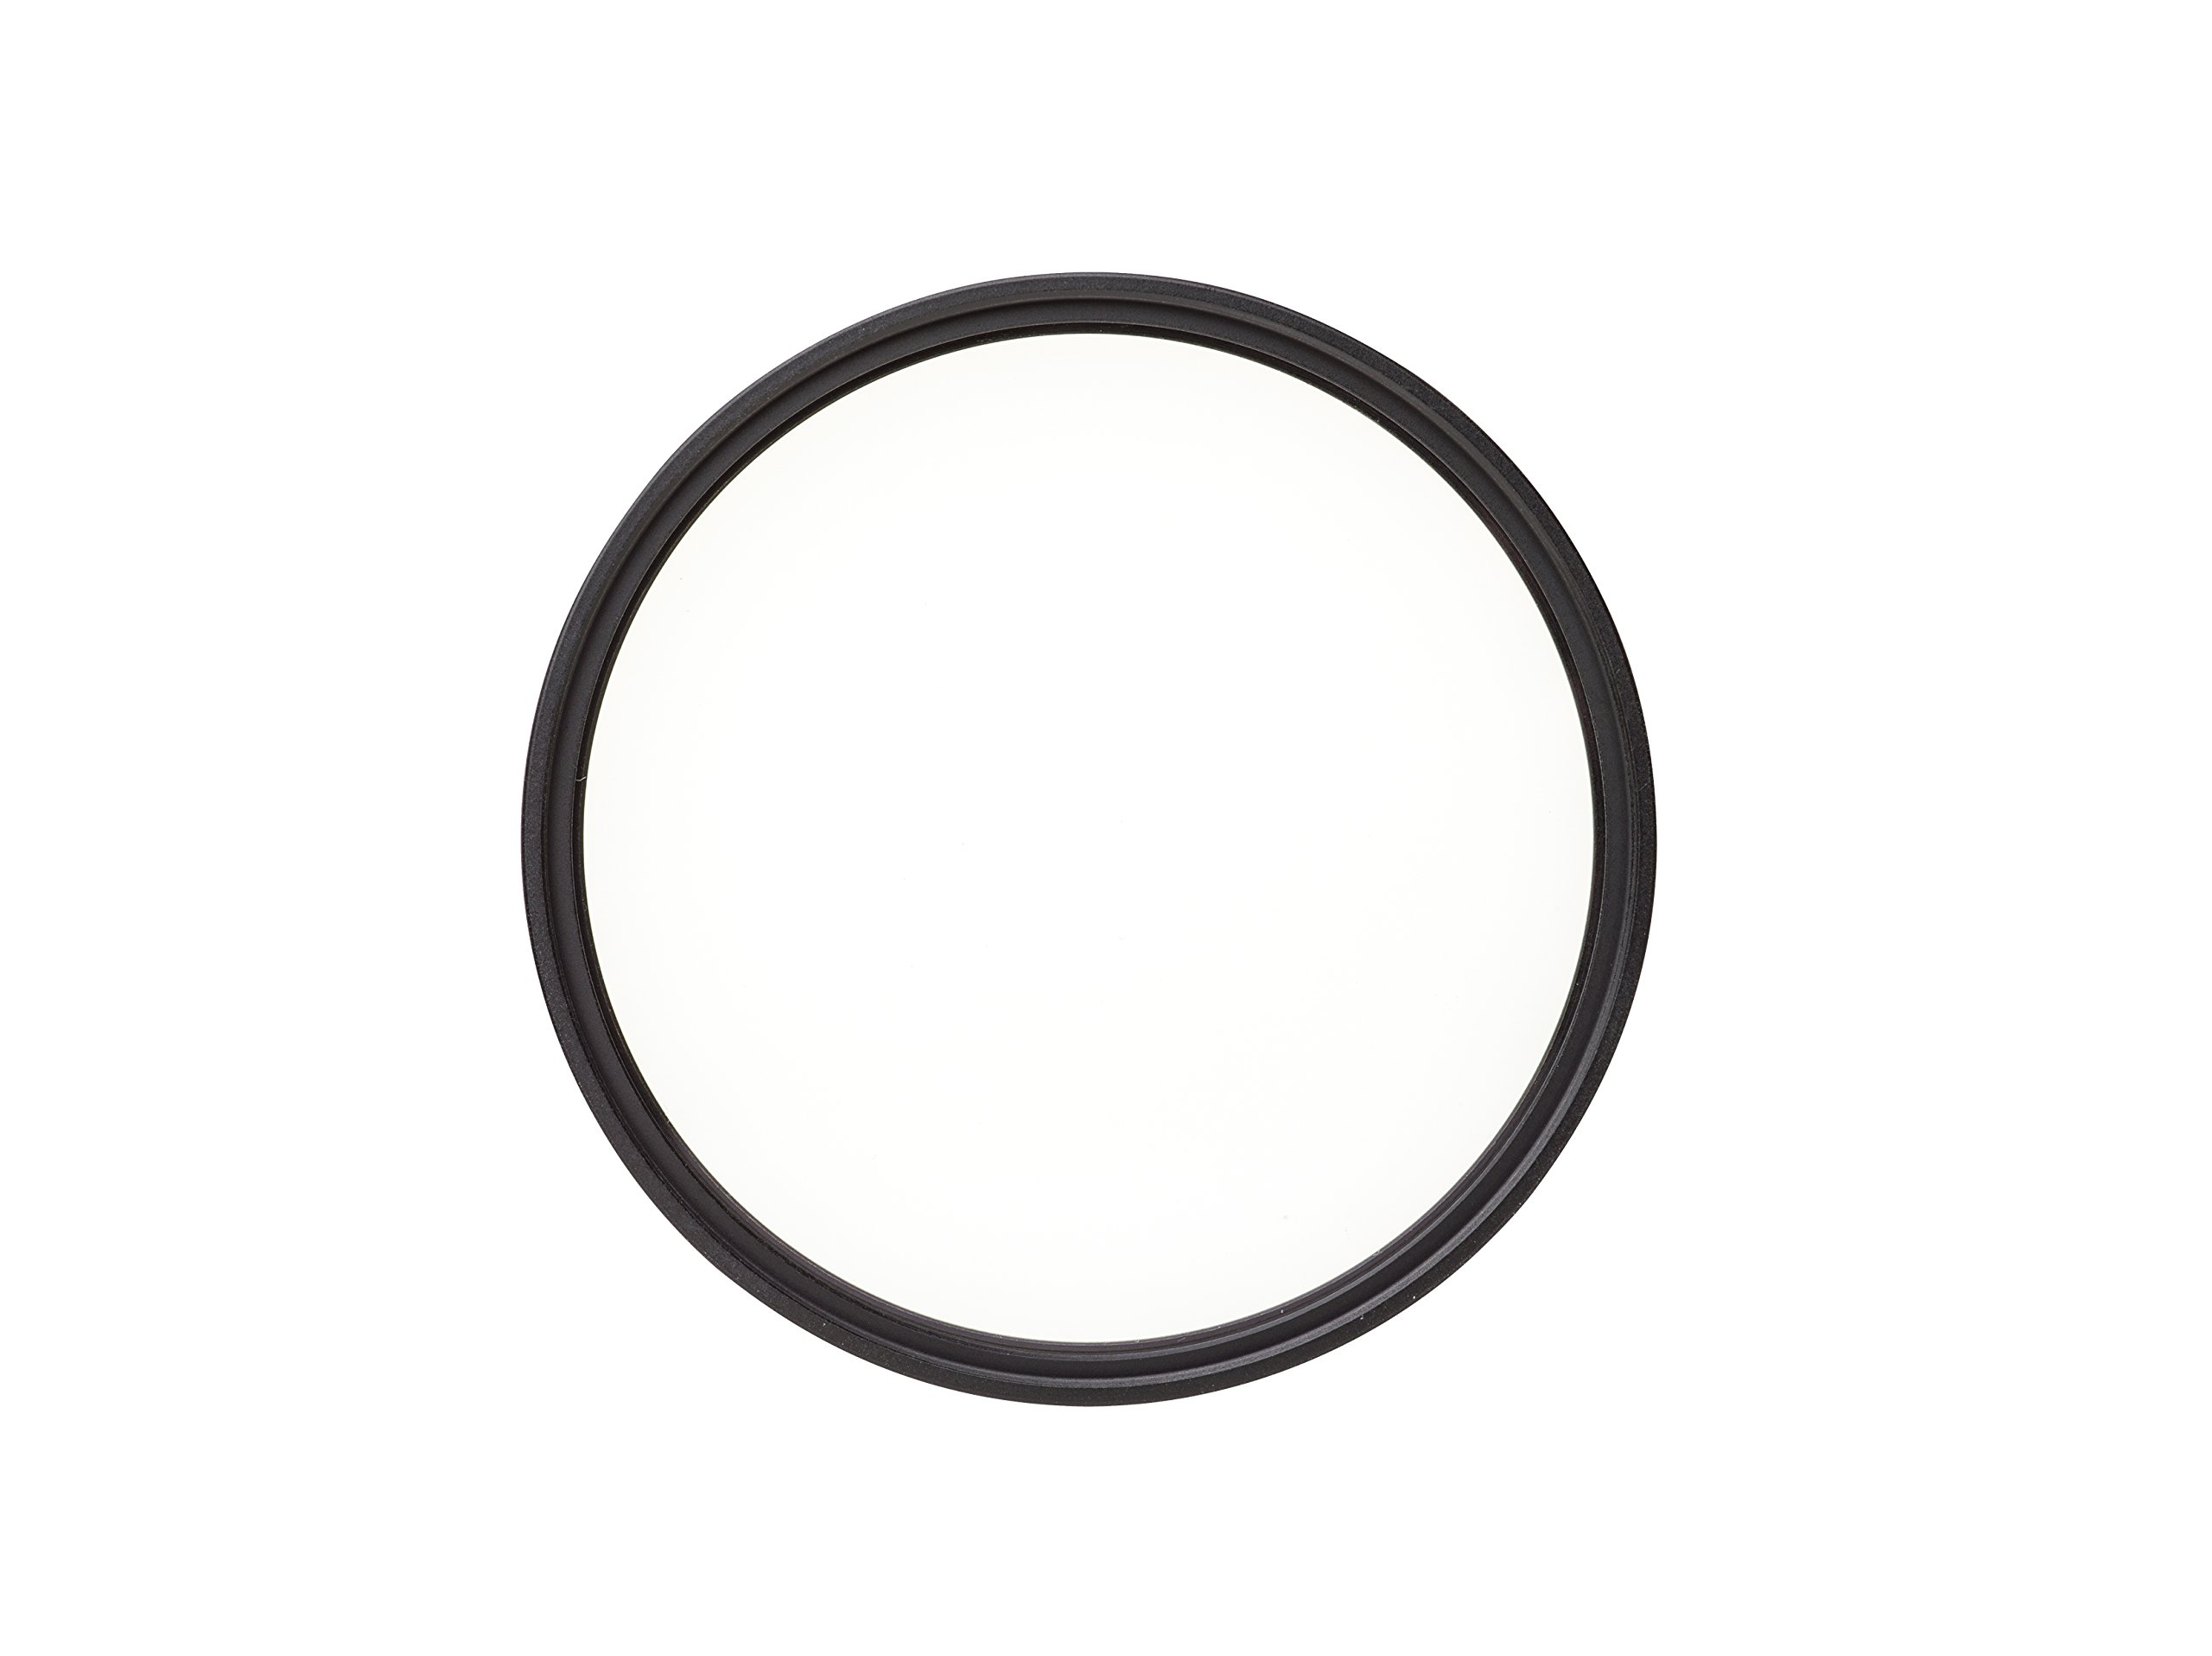 Heliopan 77mm UV SH-PMC Filter (707711) with specialty Schott glass in floating brass ring by Heliopan